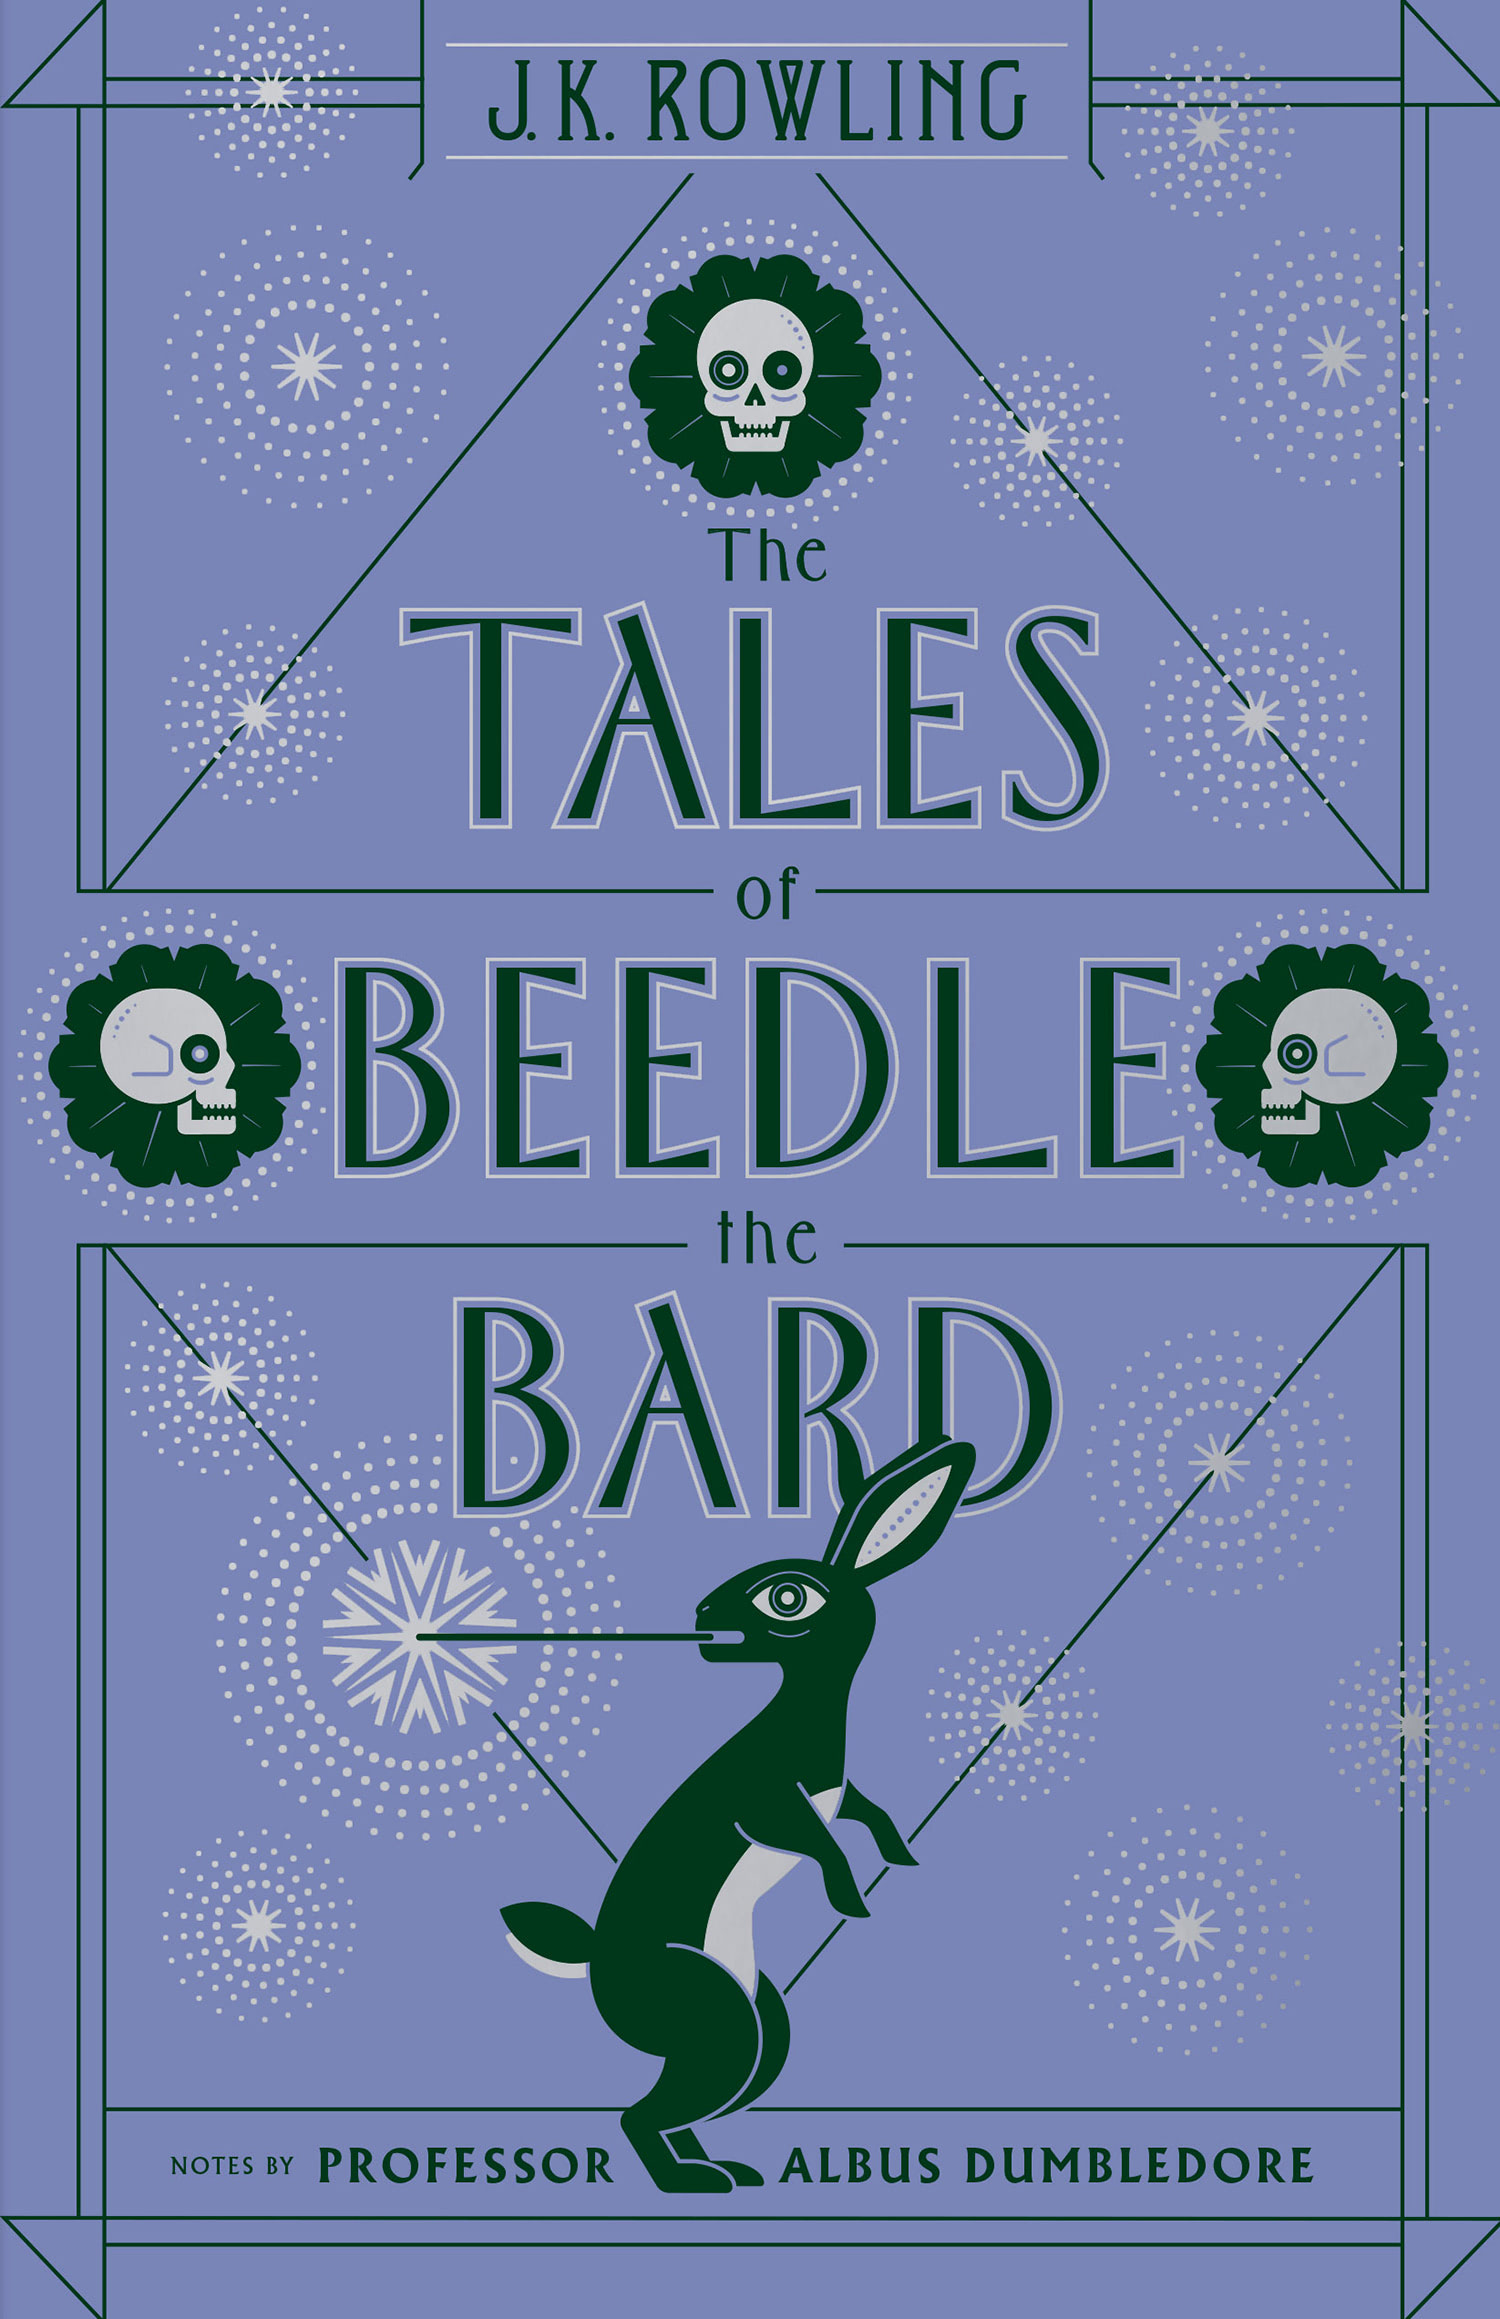 'Beedle the Bard' Hogwarts Library edition (US)